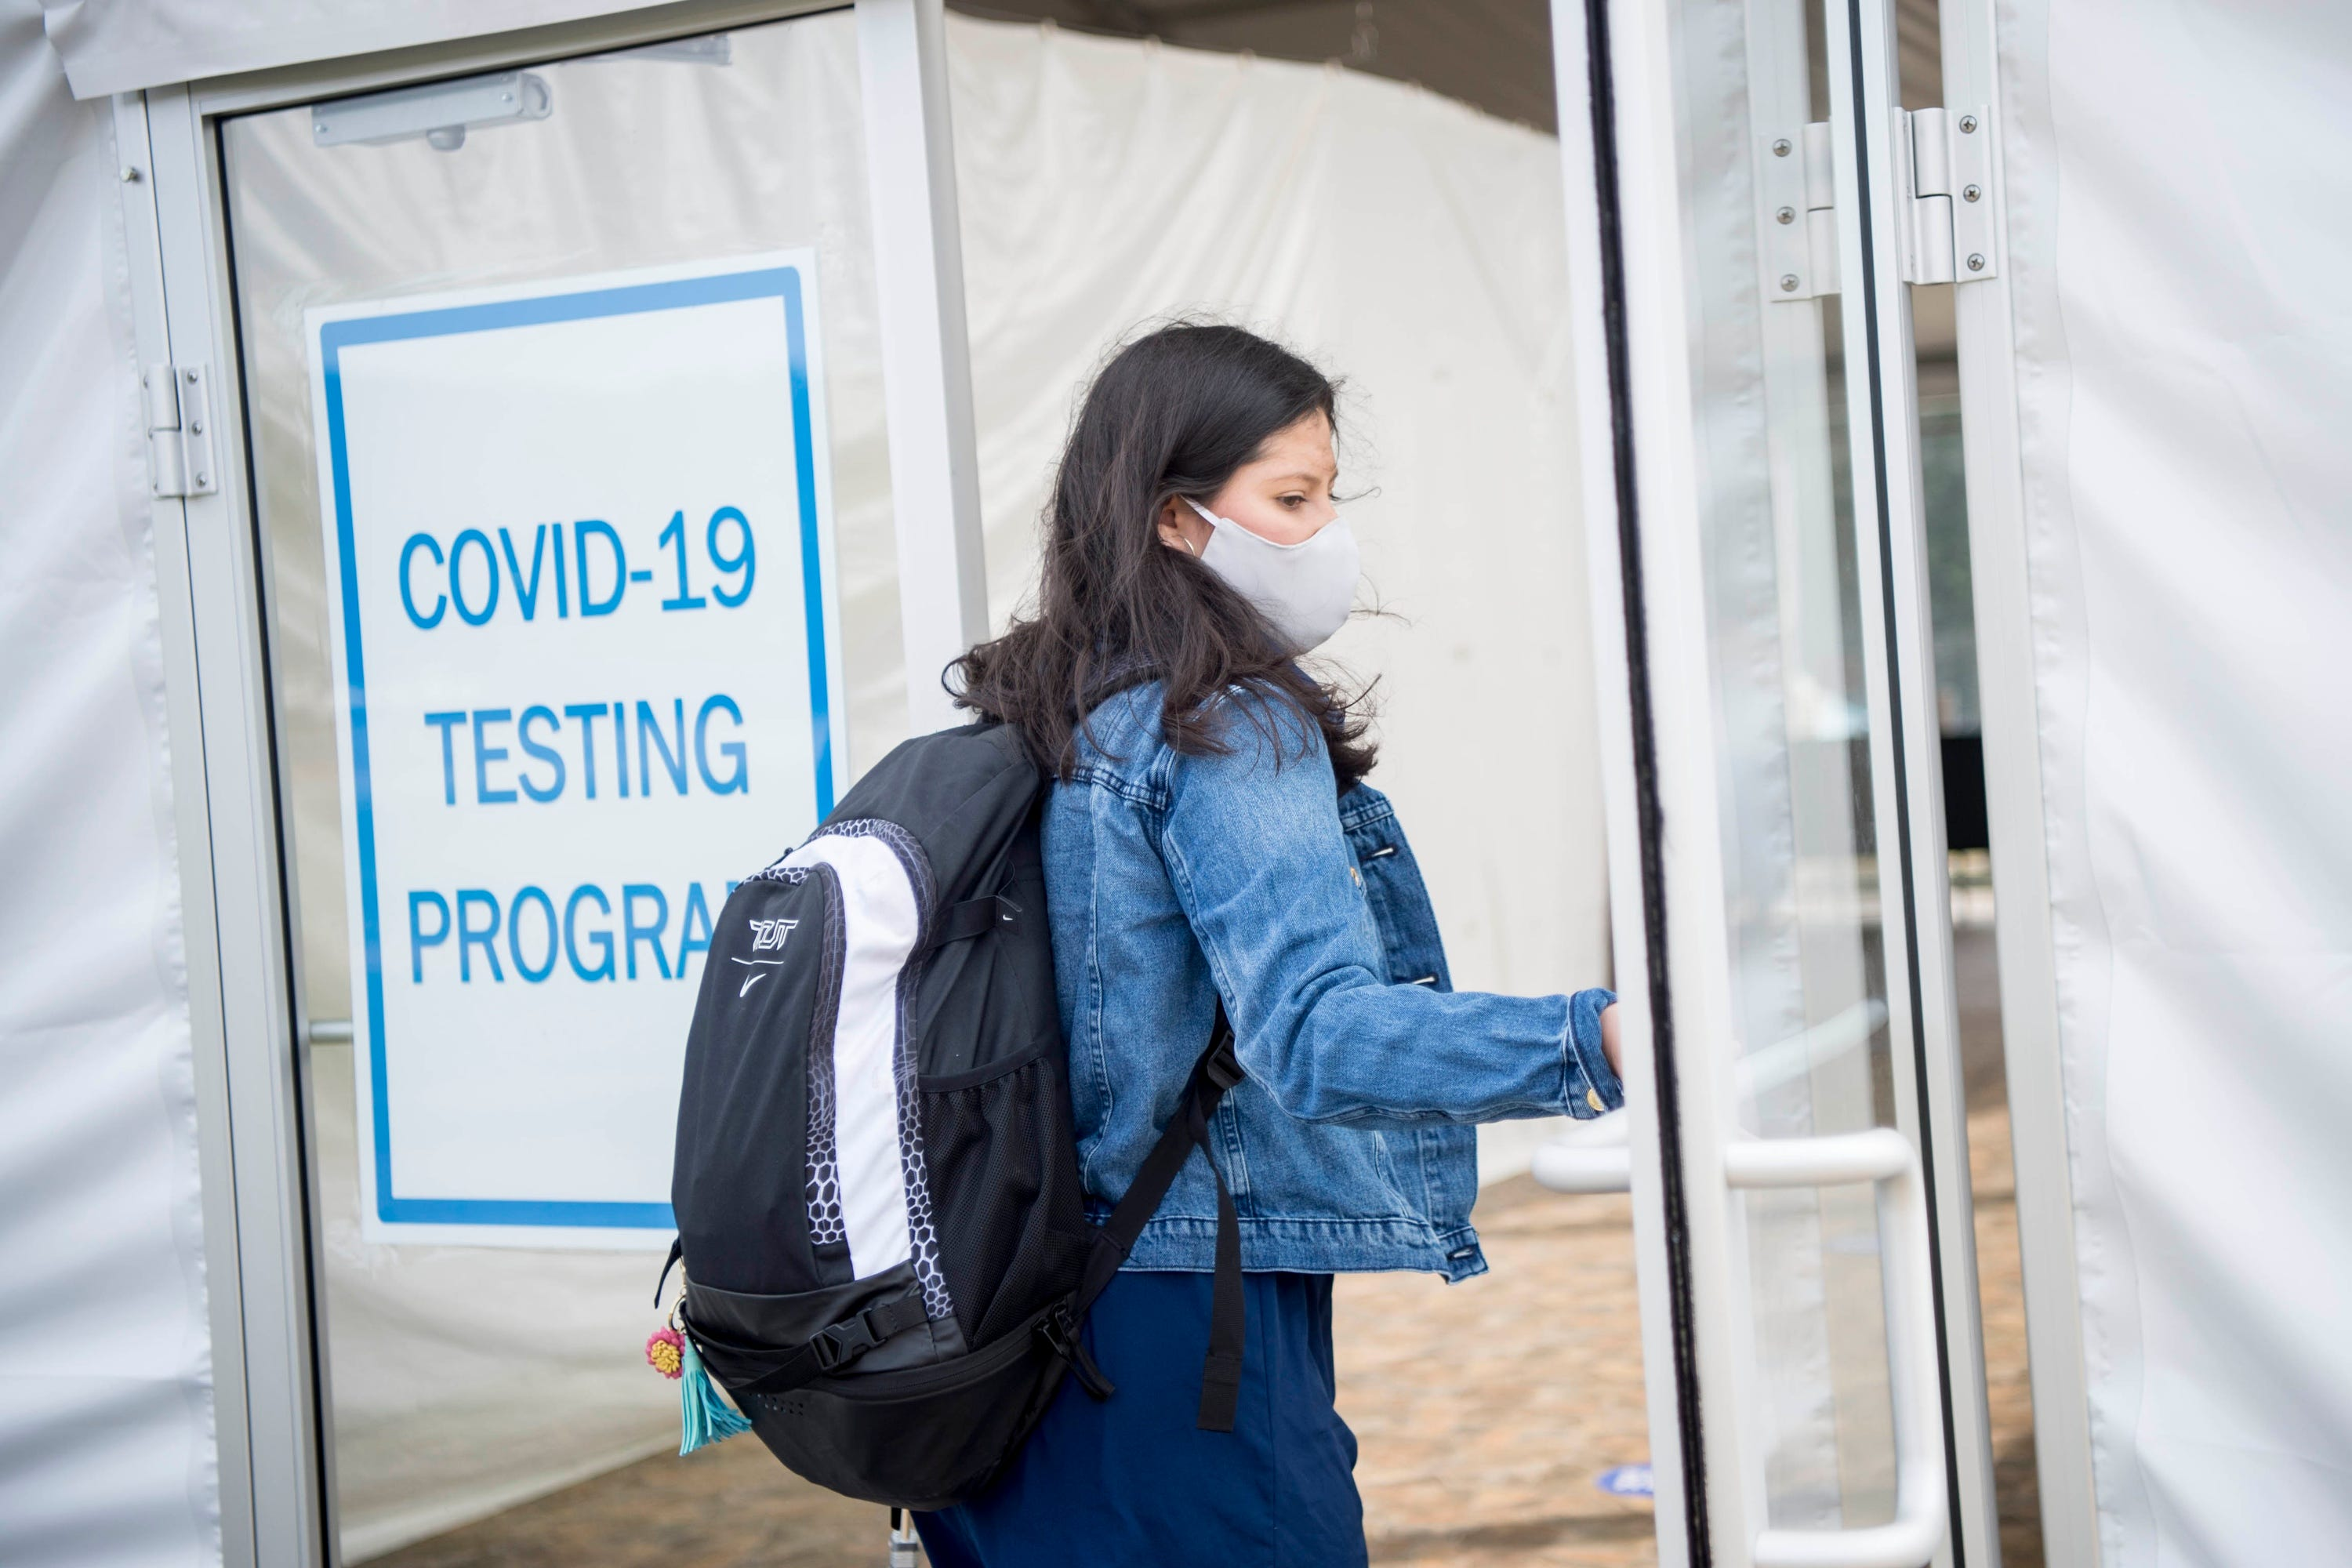 Colby College senior Ashlee Guevara, 21, of Houston, enters the COVID-19 testing site last week on campus.